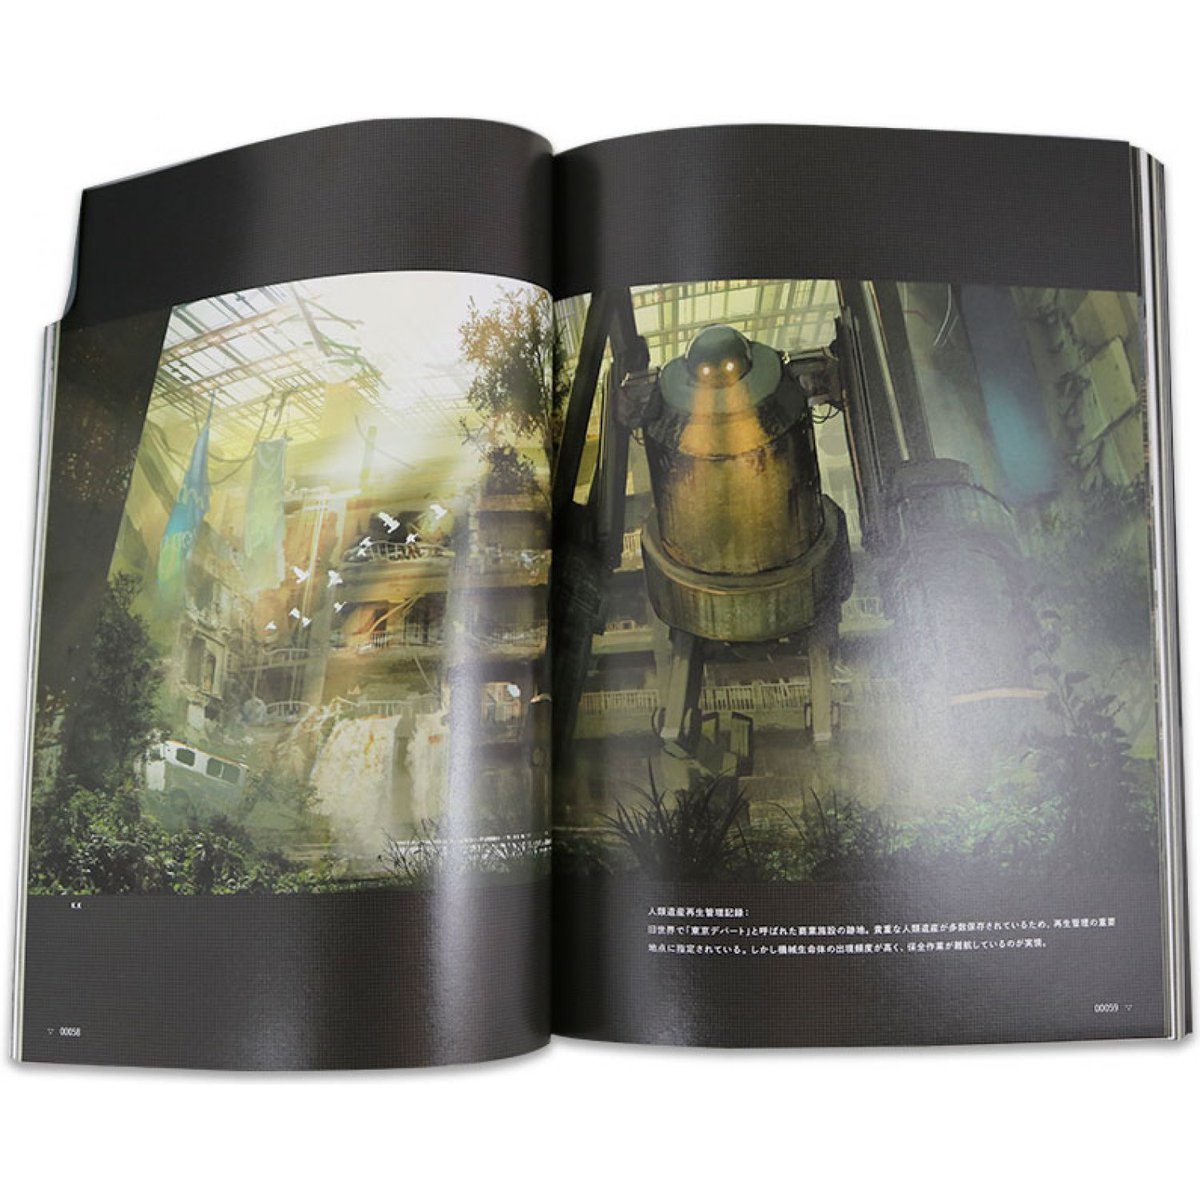 NieR:Automata World Guide Vol.1 (English) Available for